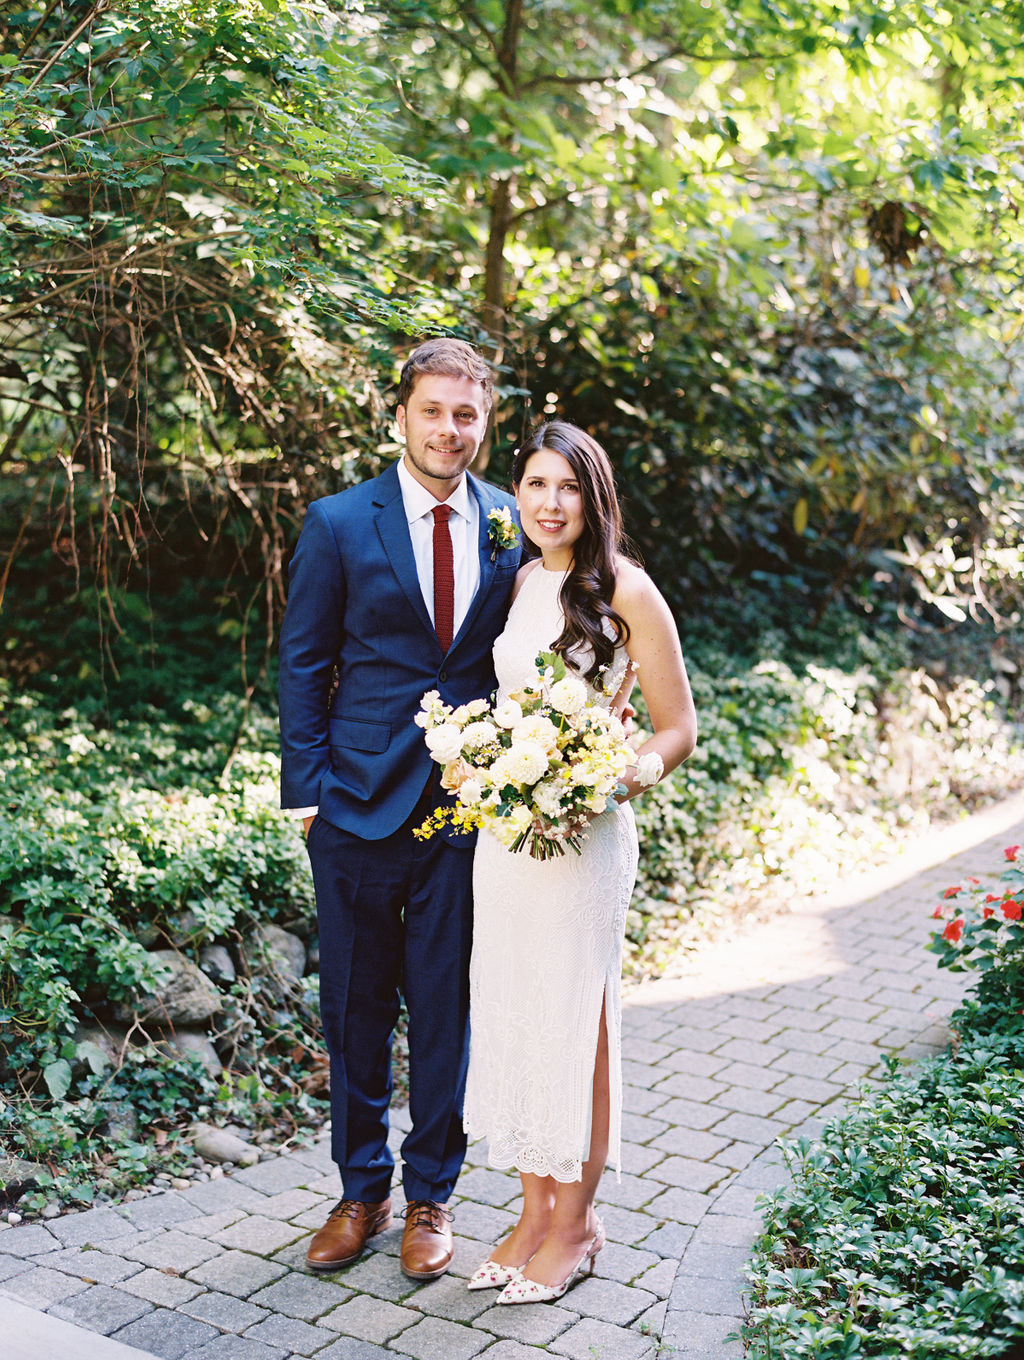 bride and groom smile on stone pathway in garden center